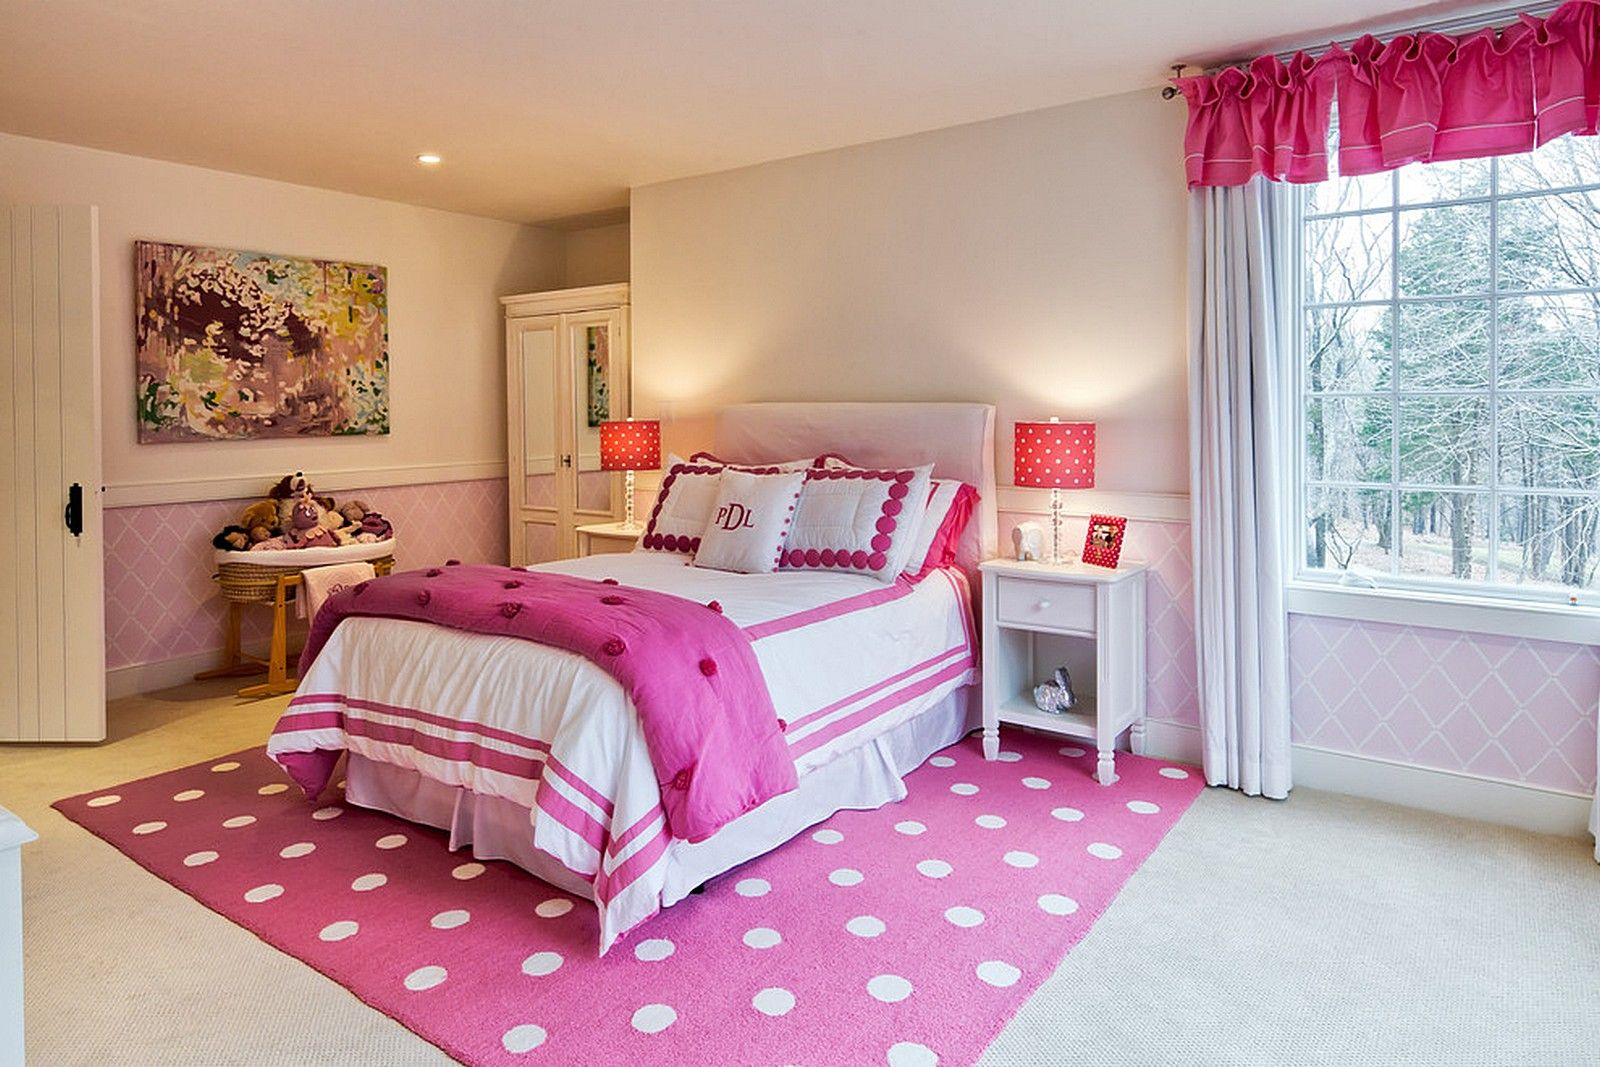 Bedroom:Polkadot Pink Rugs Ceiling Lighting Modern Bed Glass ...